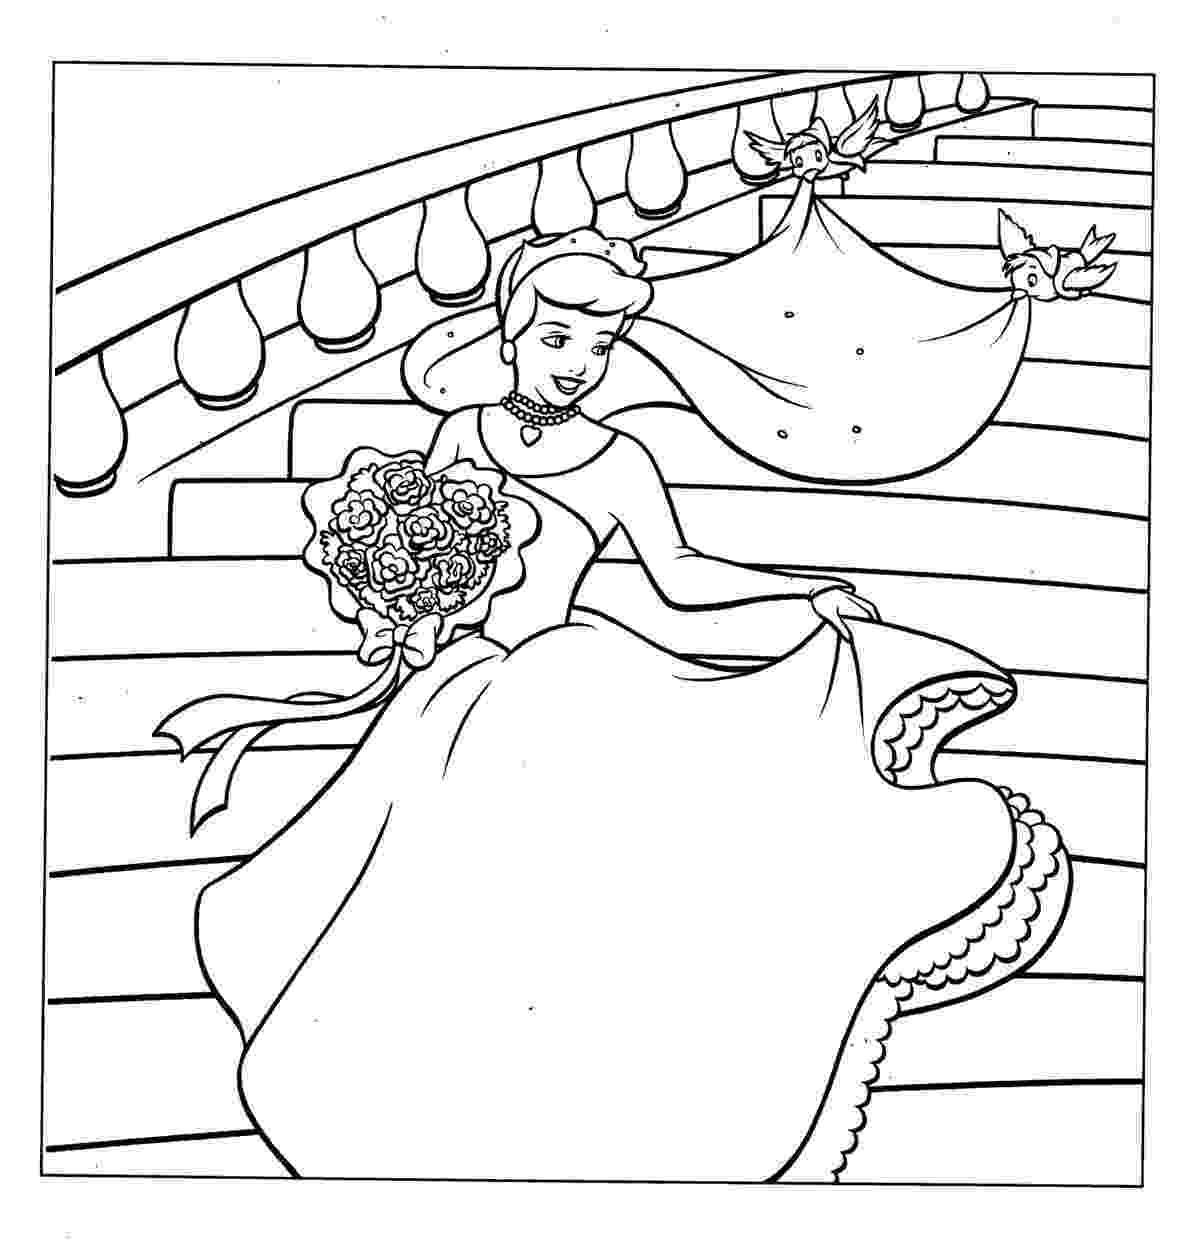 cinderella a4 colouring pages free printable cinderella activity sheets and coloring cinderella a4 colouring pages